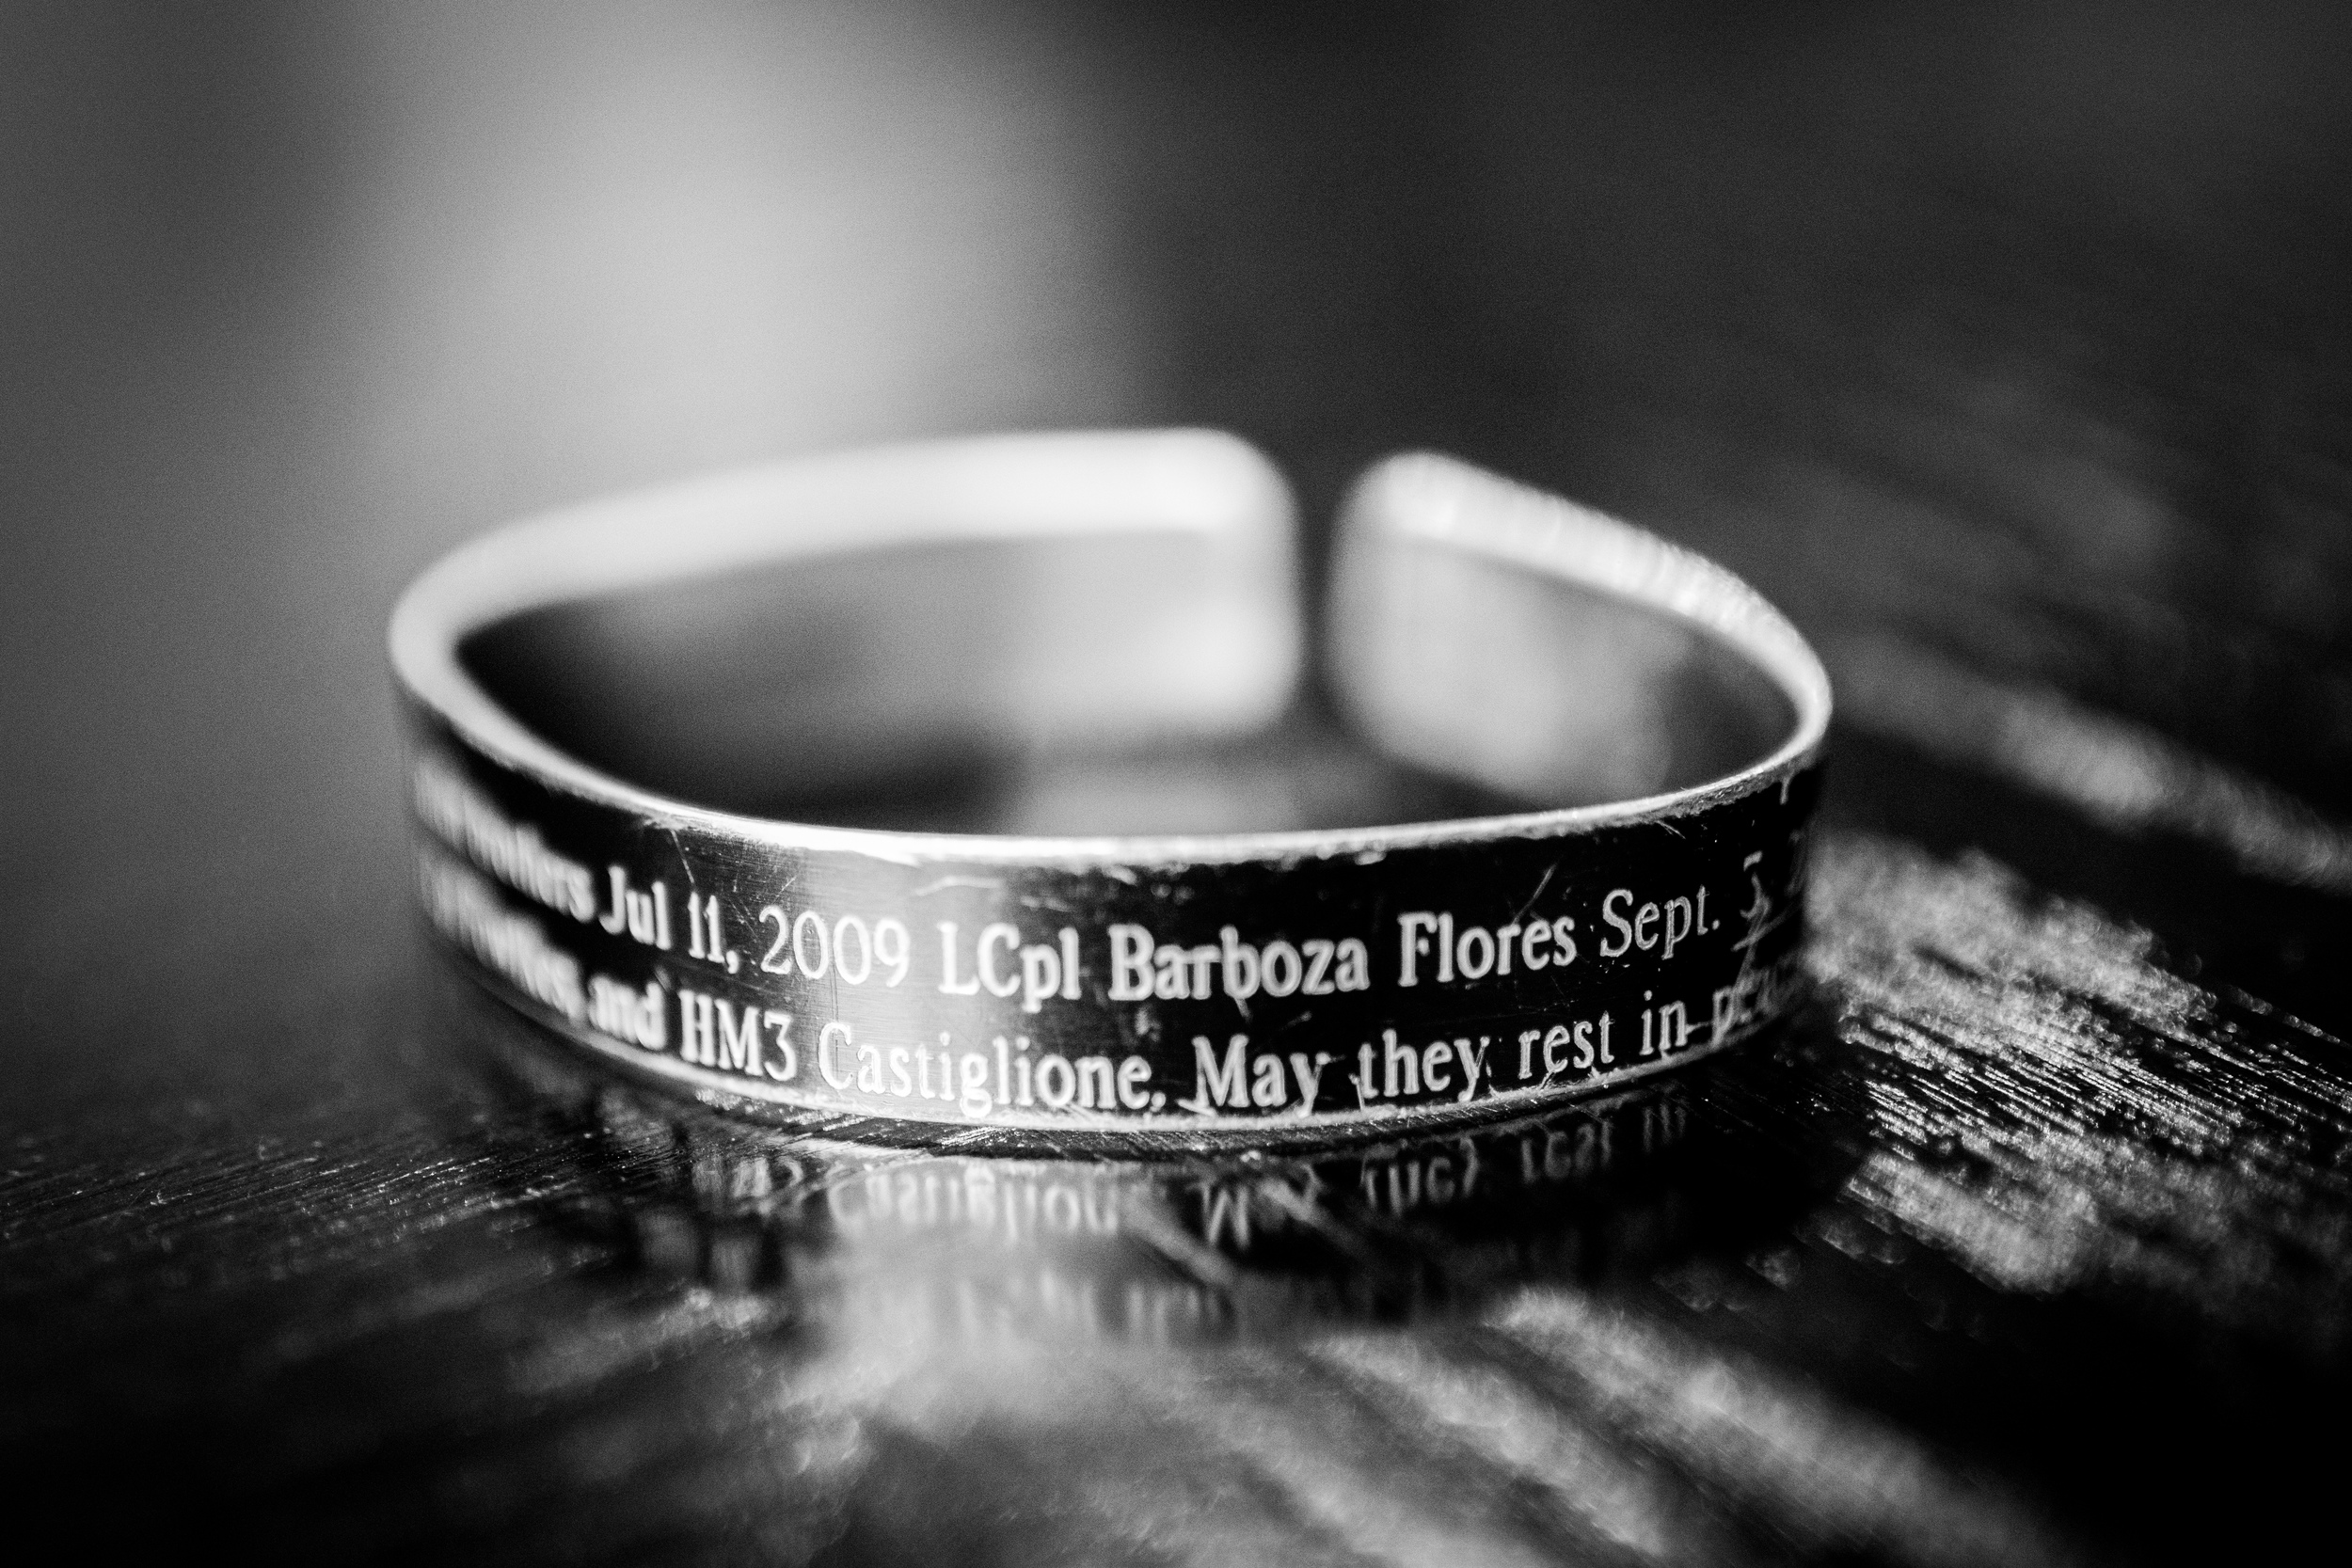 Josh keeps this on his right wrist in honor of LCPL Barbosa Flores, who lost his life during combat operations in Helmland Province